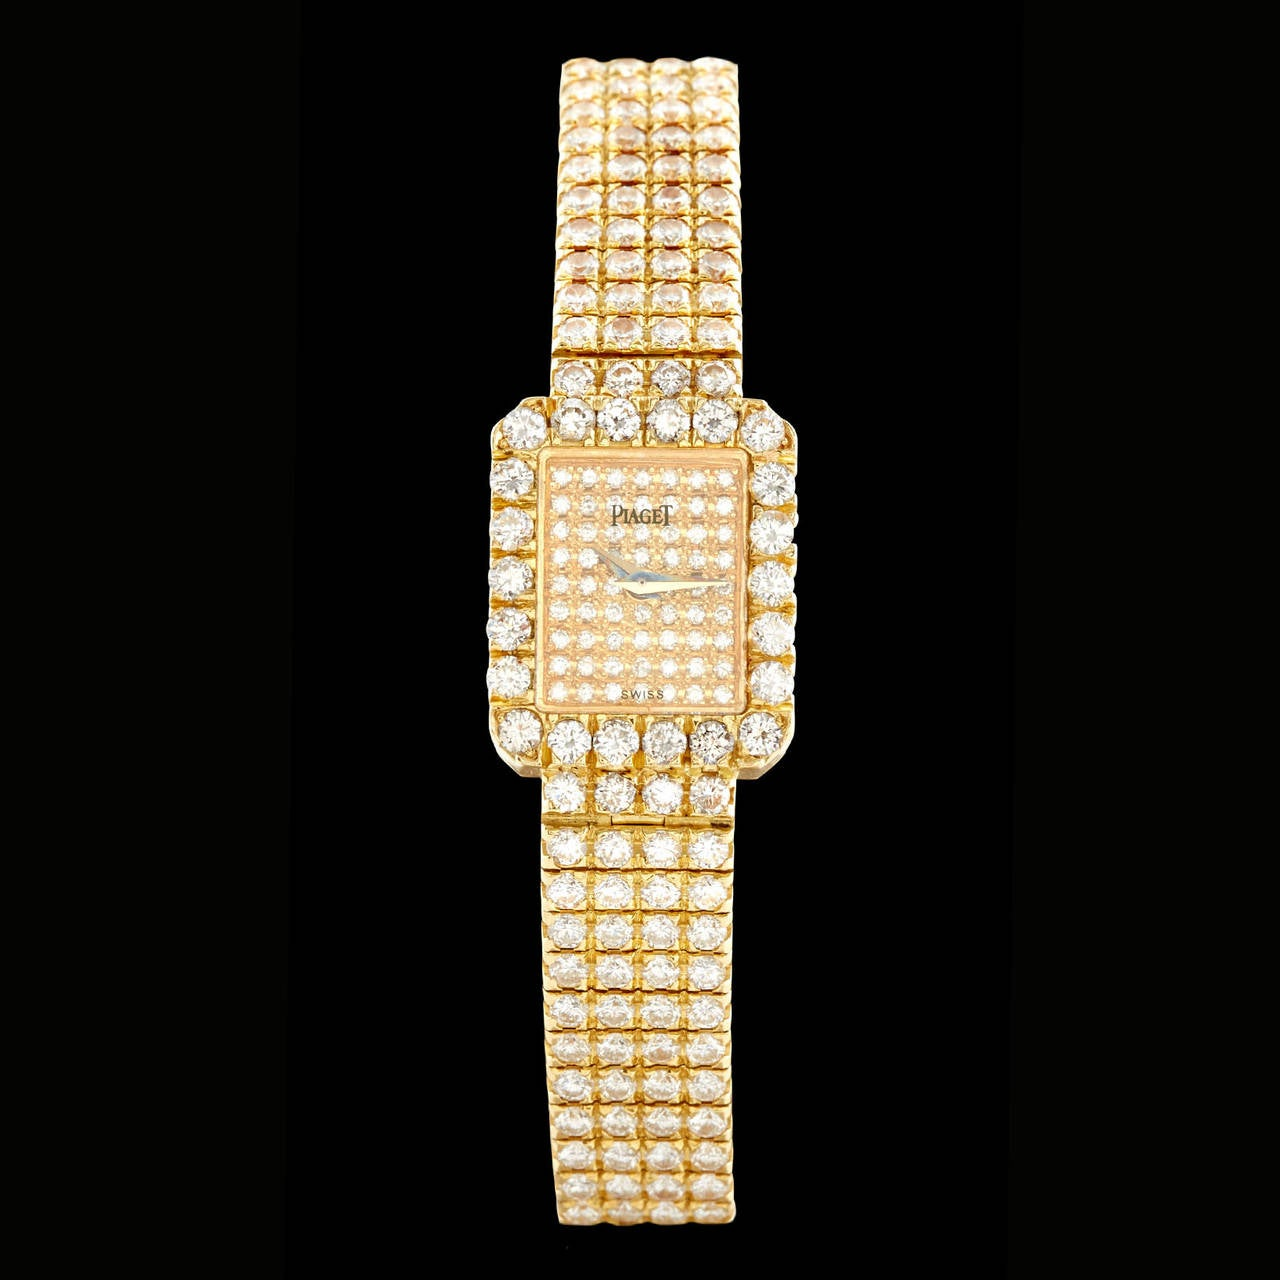 Stunning Piaget Ladies Diamond Watch set in 18Kt Yellow Gold. 332 round brilliant cut diamonds are set beautifully on the entire front of the watch totaling a carat weight of 8.60-ctw. The case measures 18mm x 14.5mm with a bracelet length of 6.5